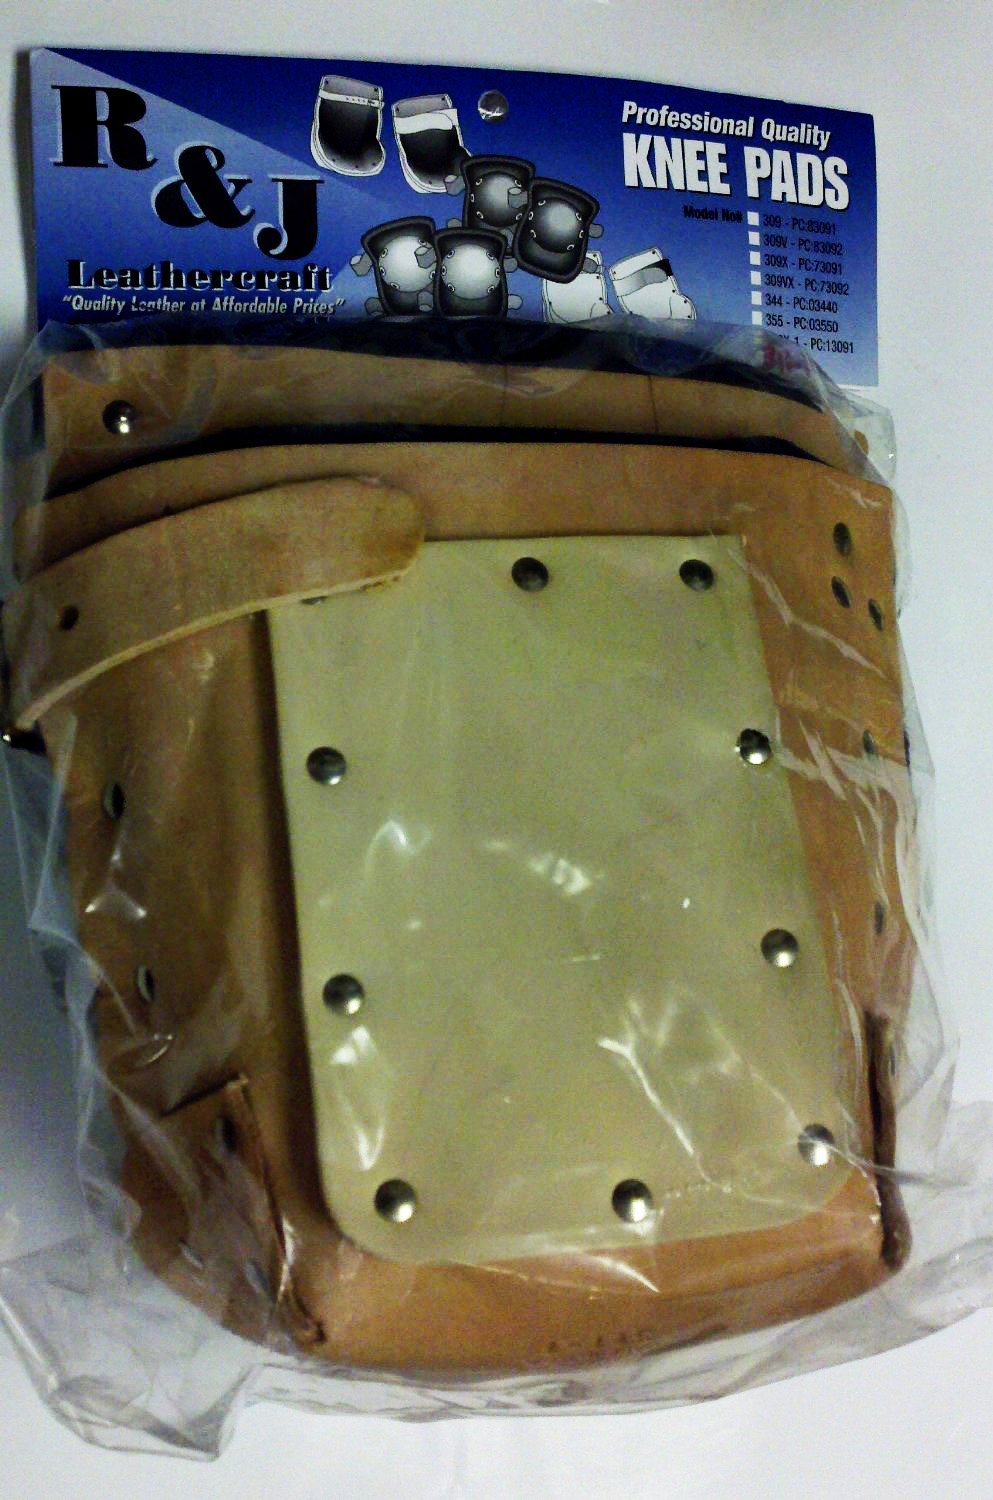 R&J Leathercraft, 311-1, Extra Heavy Duty Professional Knee Pads w/ Neolite Sole, 1'' wide Leather Strap, Made in USA*****